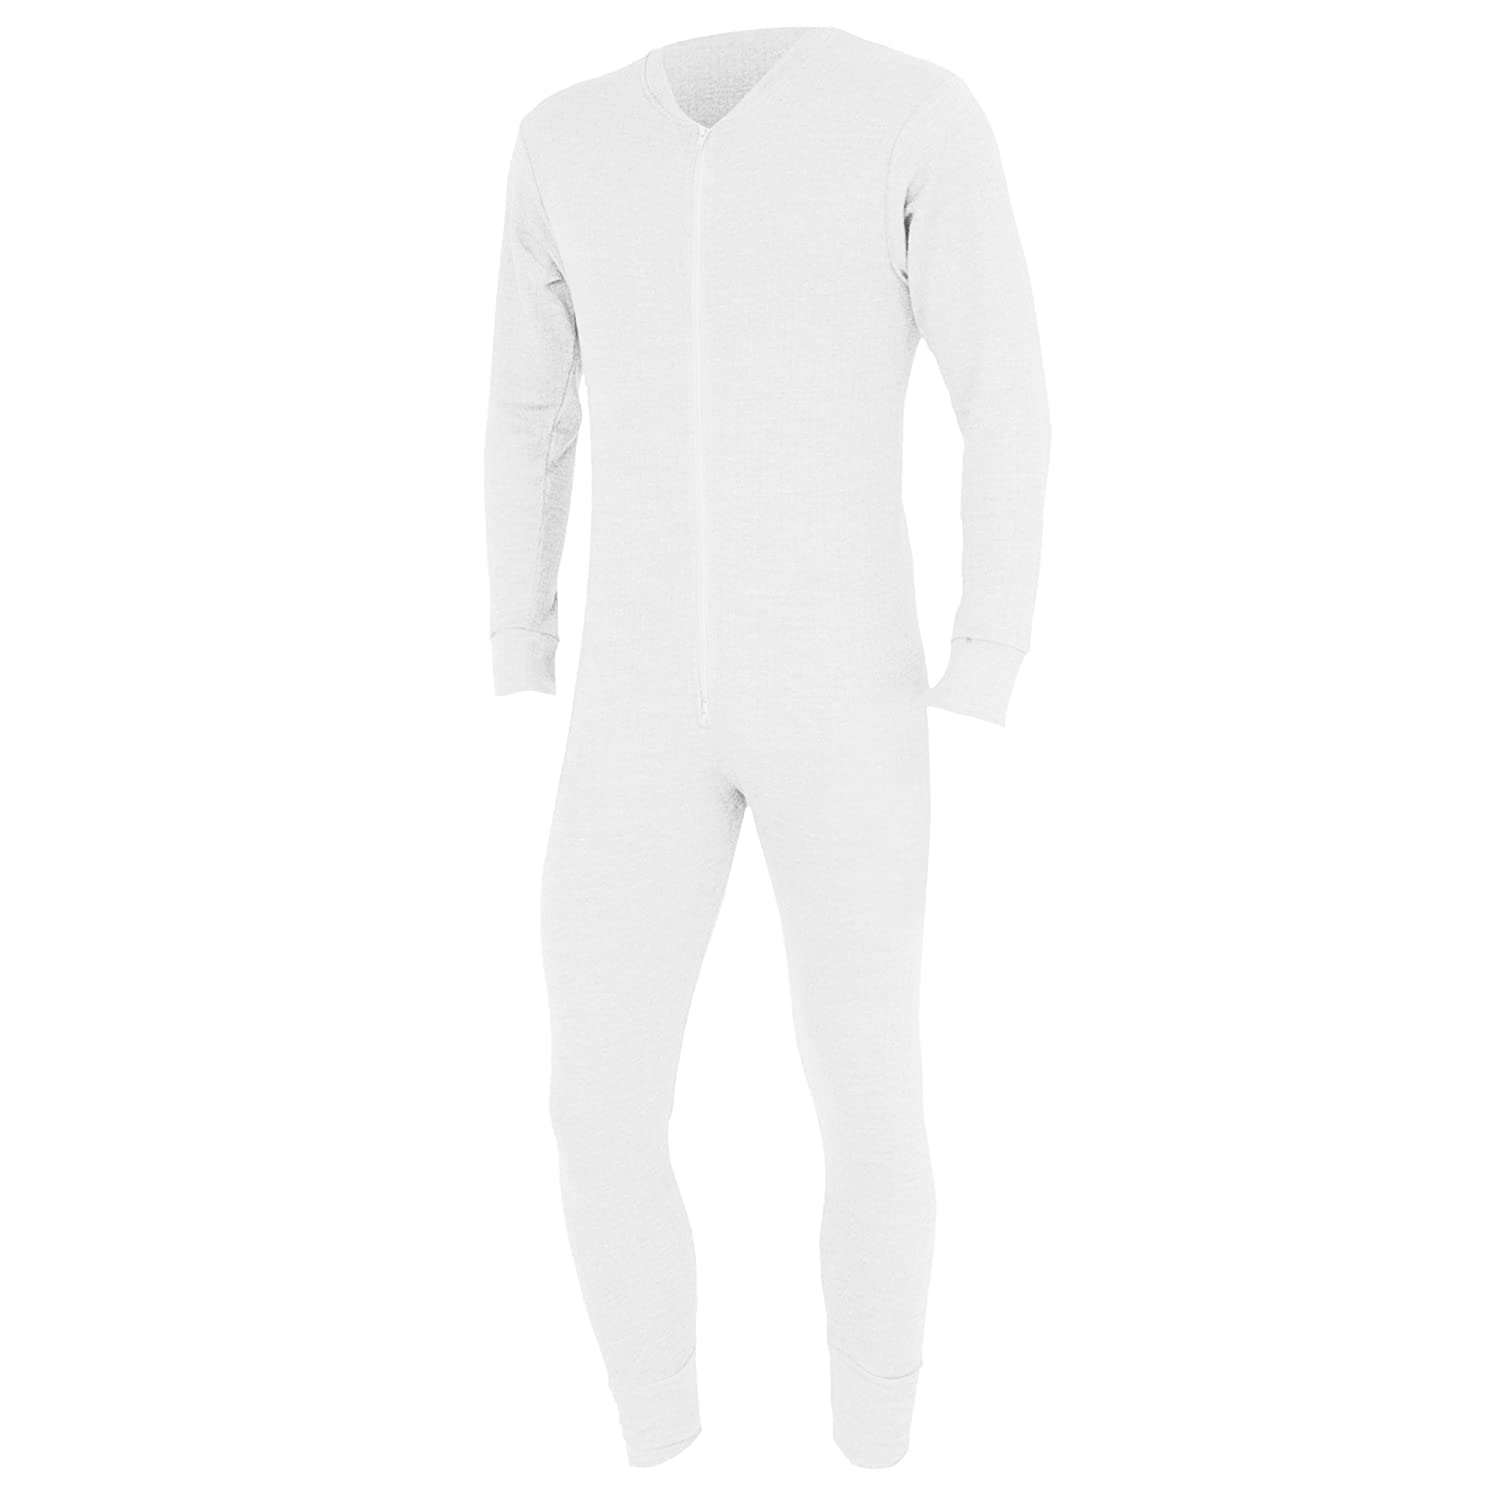 Floso Mens Thermal Underwear All In One Union Suit UTTHERM45